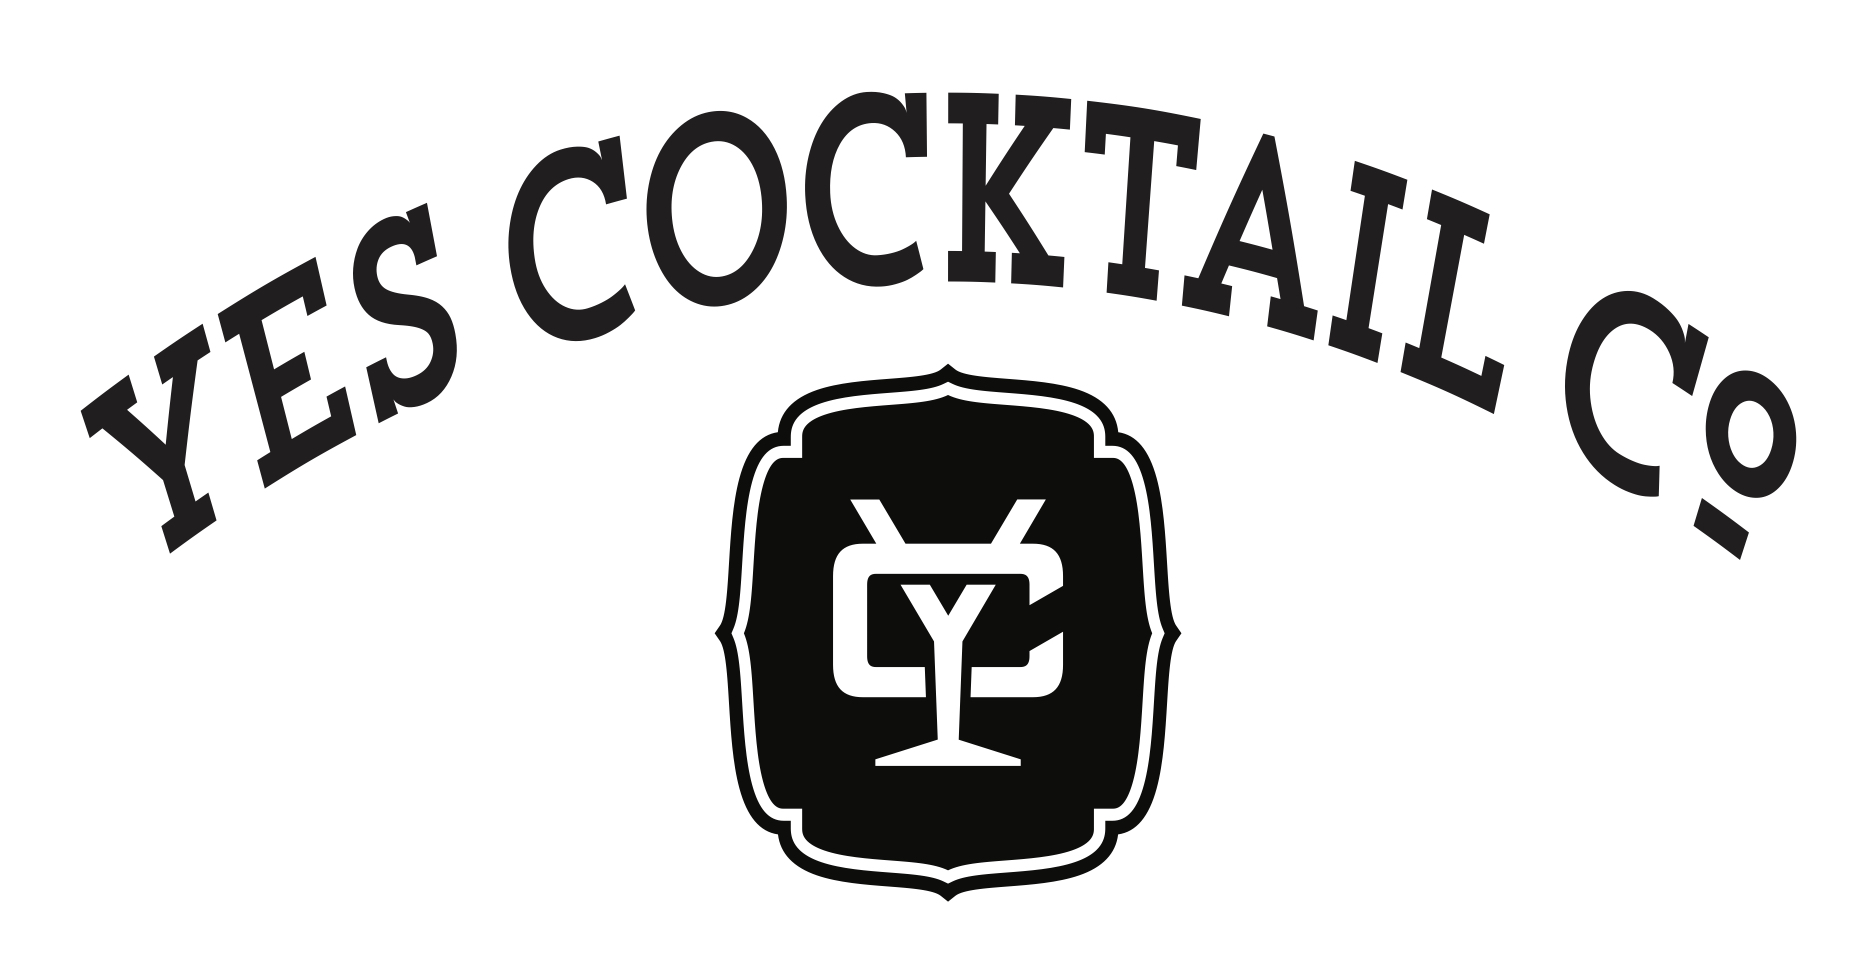 Yes Cocktail Co.